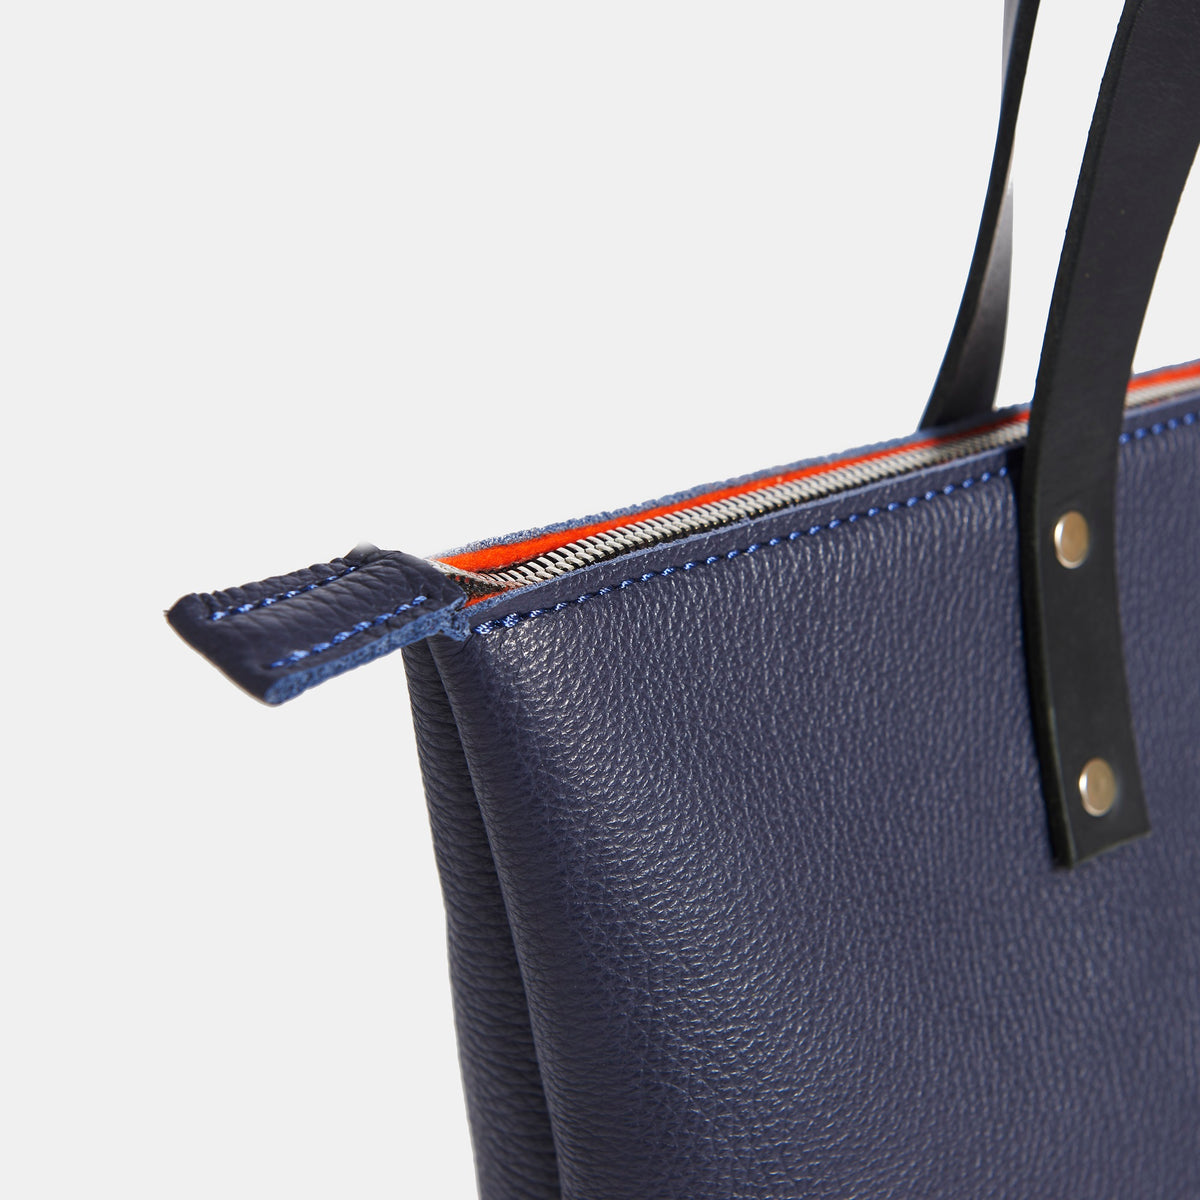 NAVY Italian Leather Tote with Wool Felt Lining and Zip - RYAN London